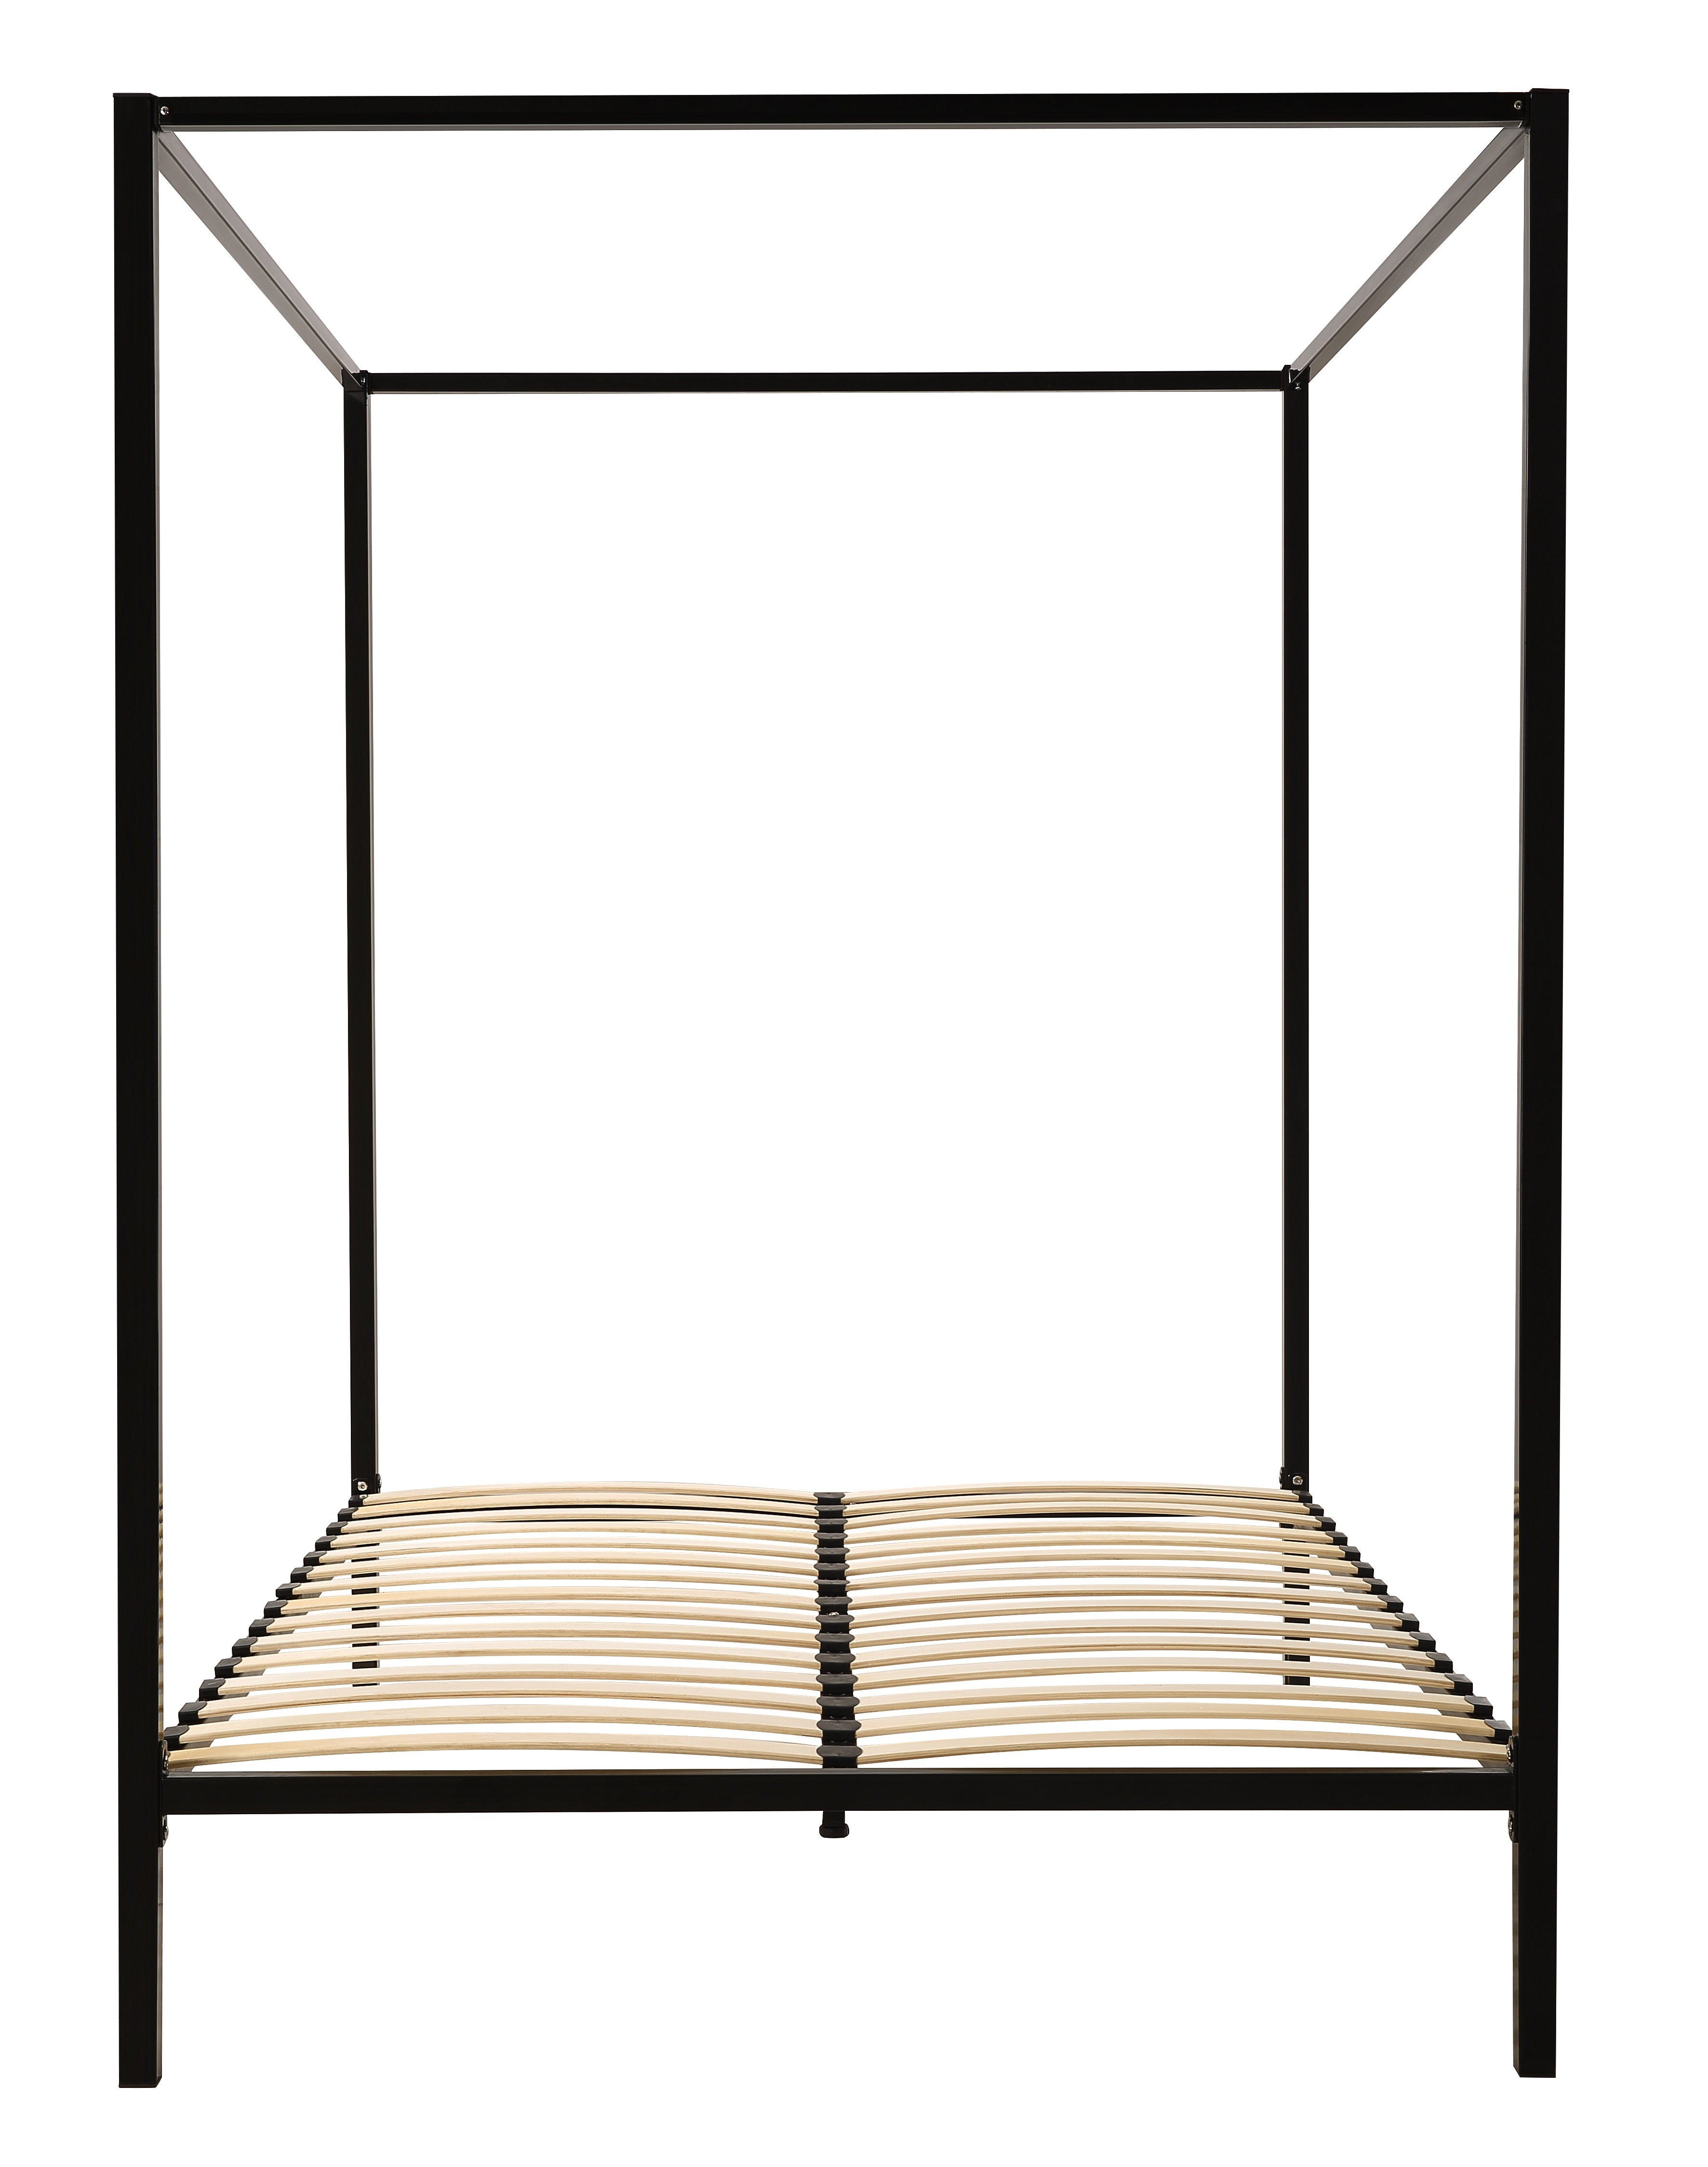 4 Four Poster Queen Bed Frame  Z2739